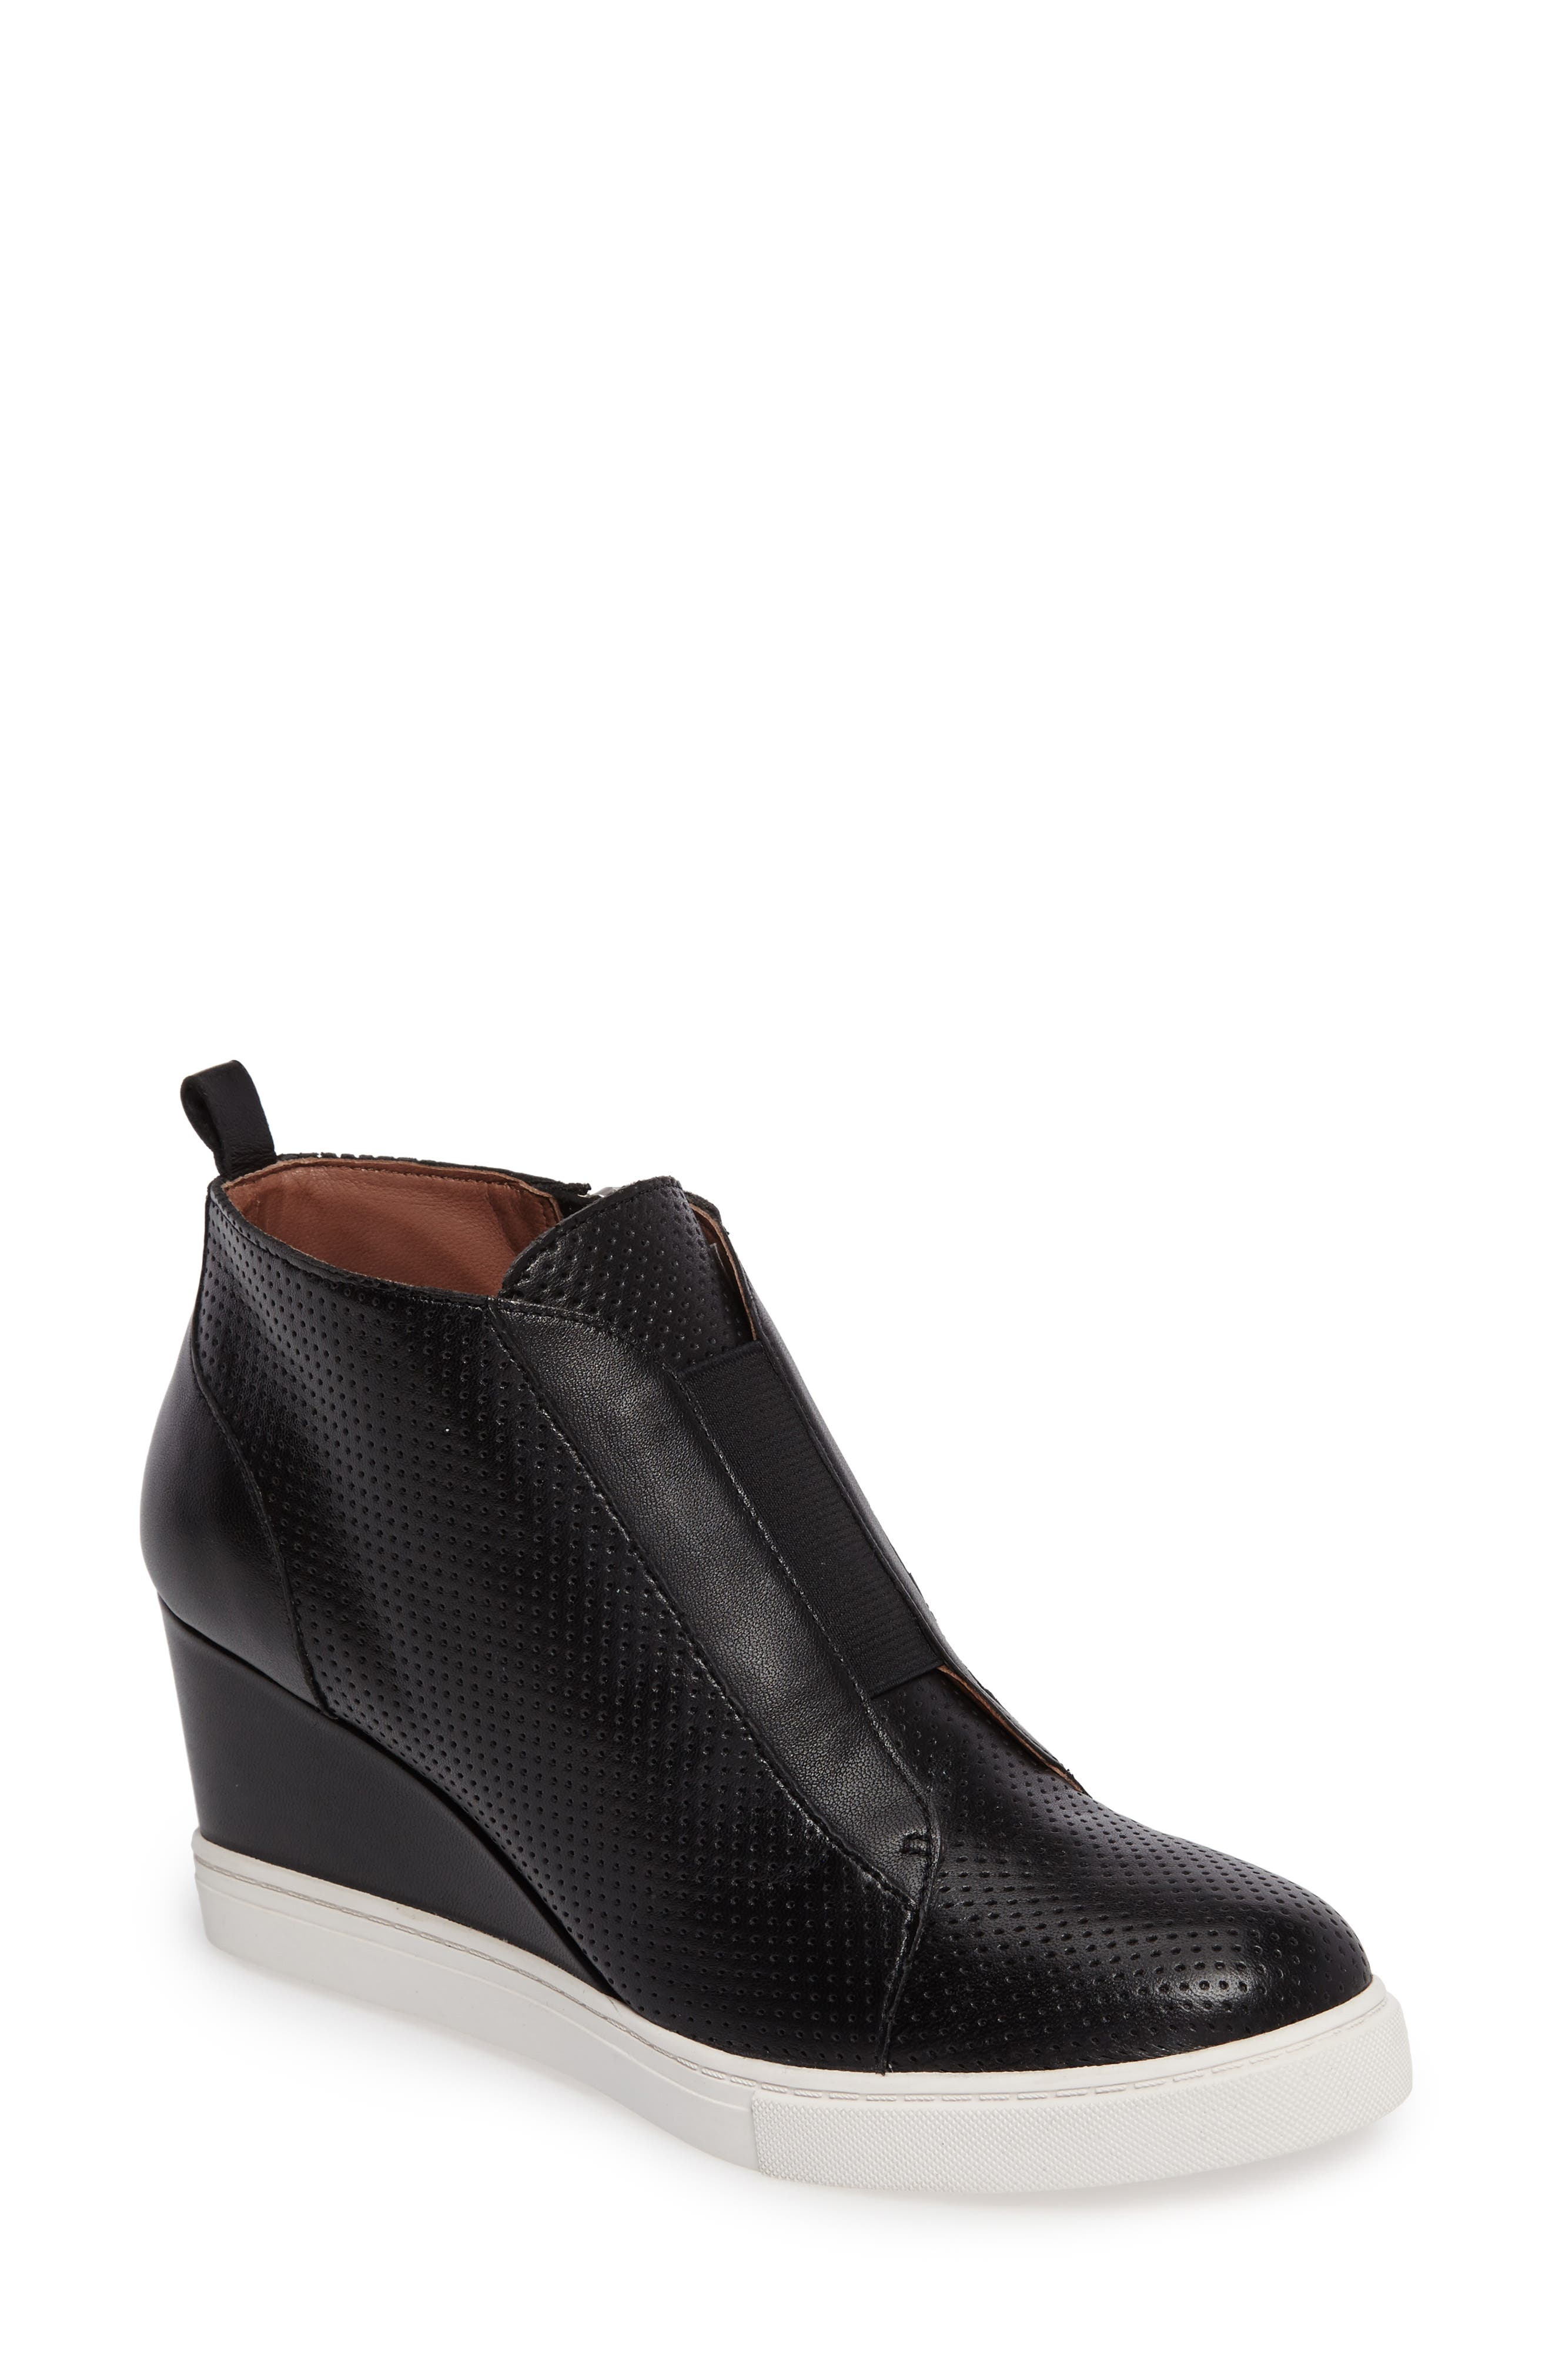 Main Image - Linea Paolo 'Felicia' Wedge Bootie (Women)